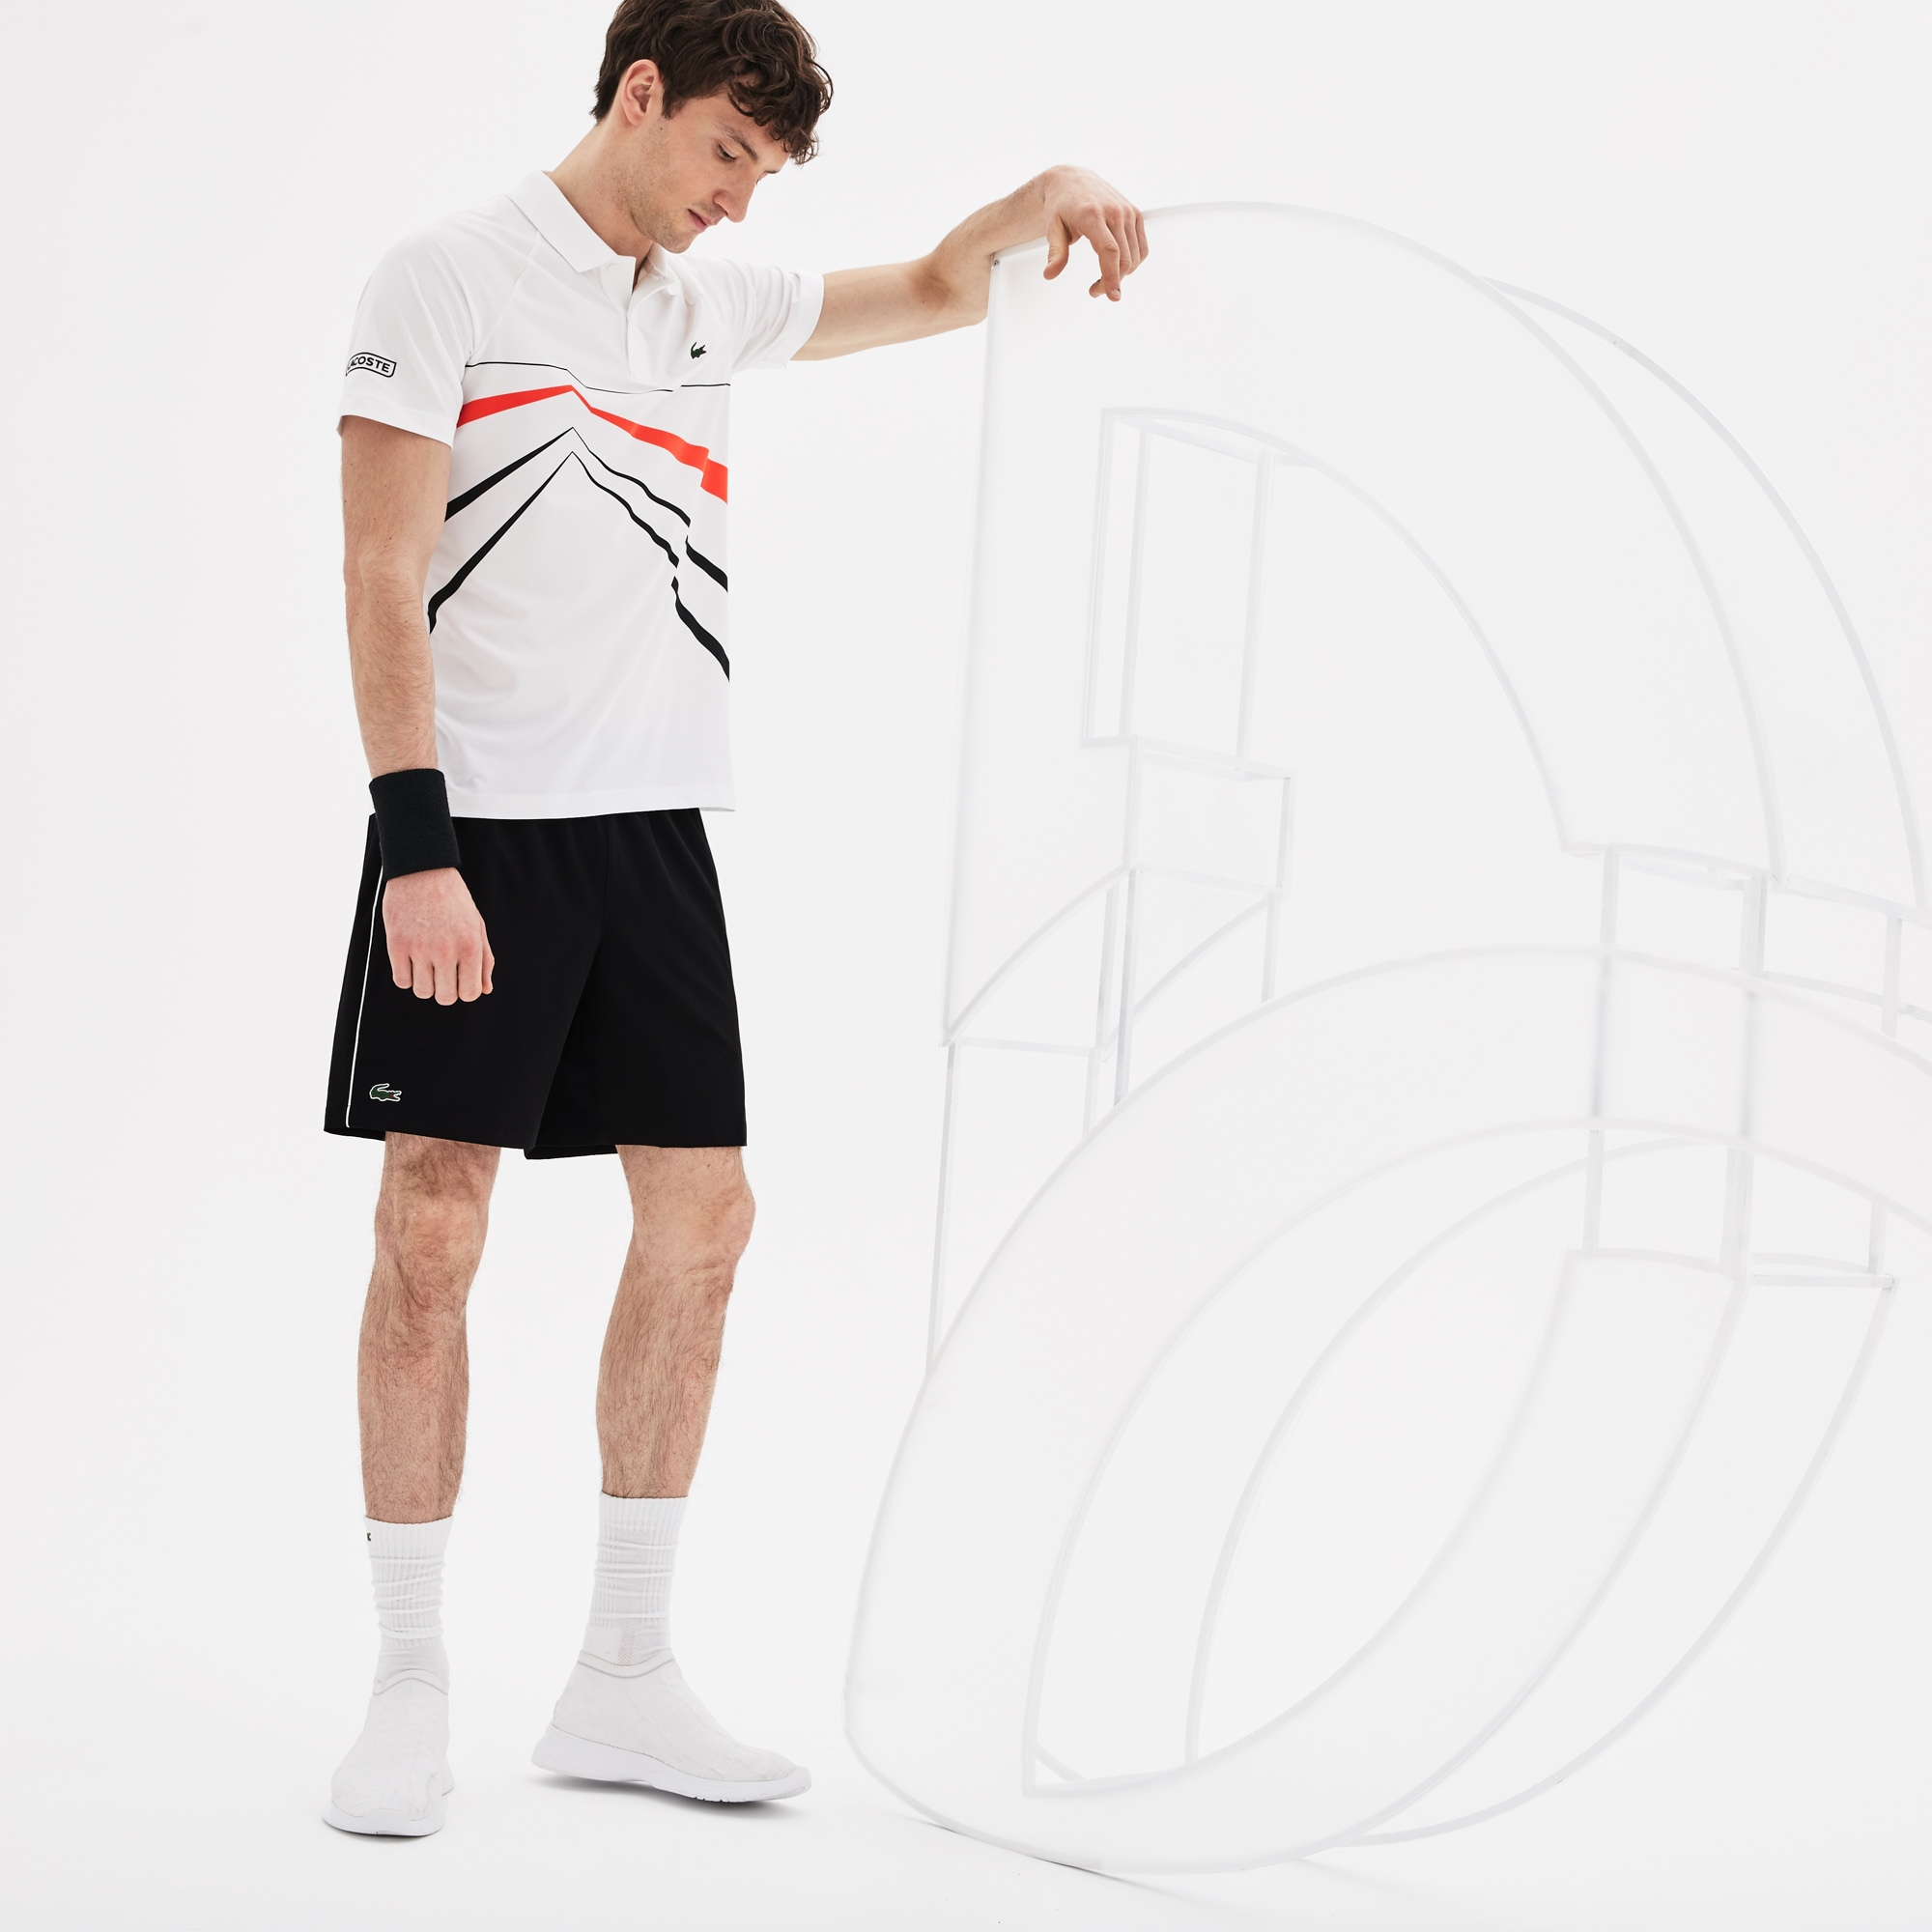 Pantaloncini tecnici Lacoste SPORT COLLEZIONE NOVAK DJOKOVIC SUPPORT WITH STYLE in stretch con bordino